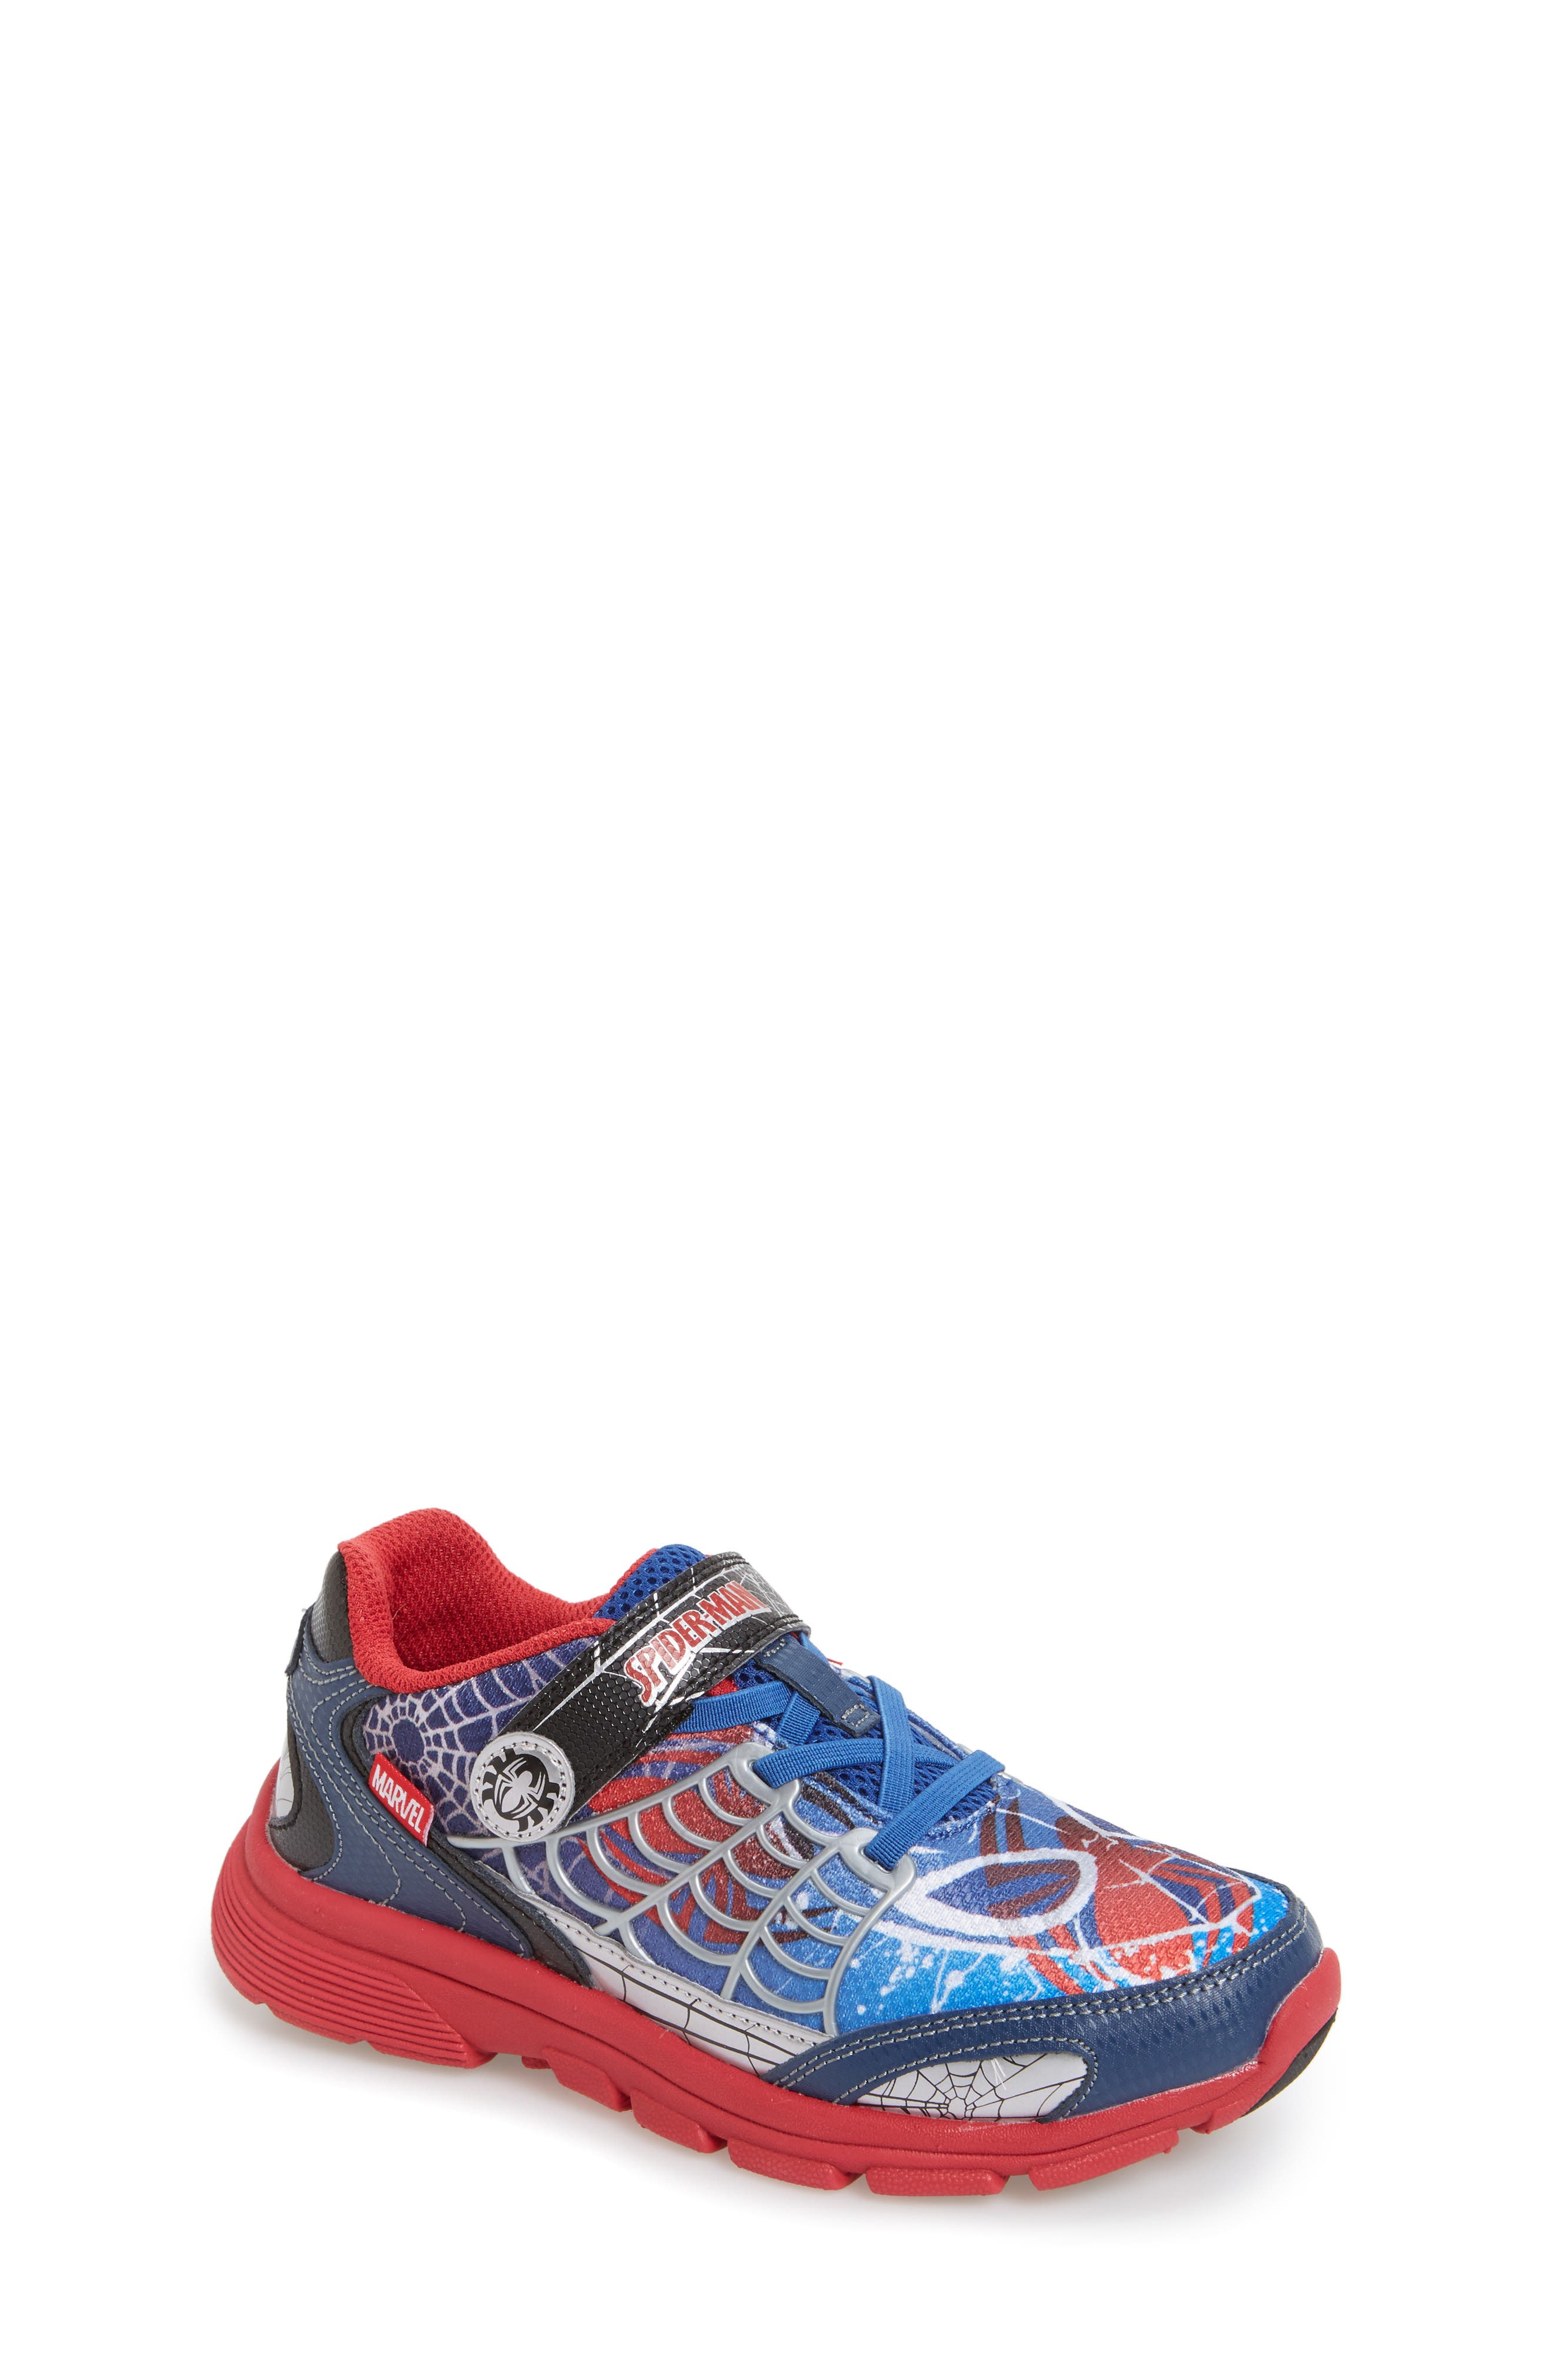 Spidey Sense Light-Up Sneaker,                             Main thumbnail 1, color,                             Blue/ Red